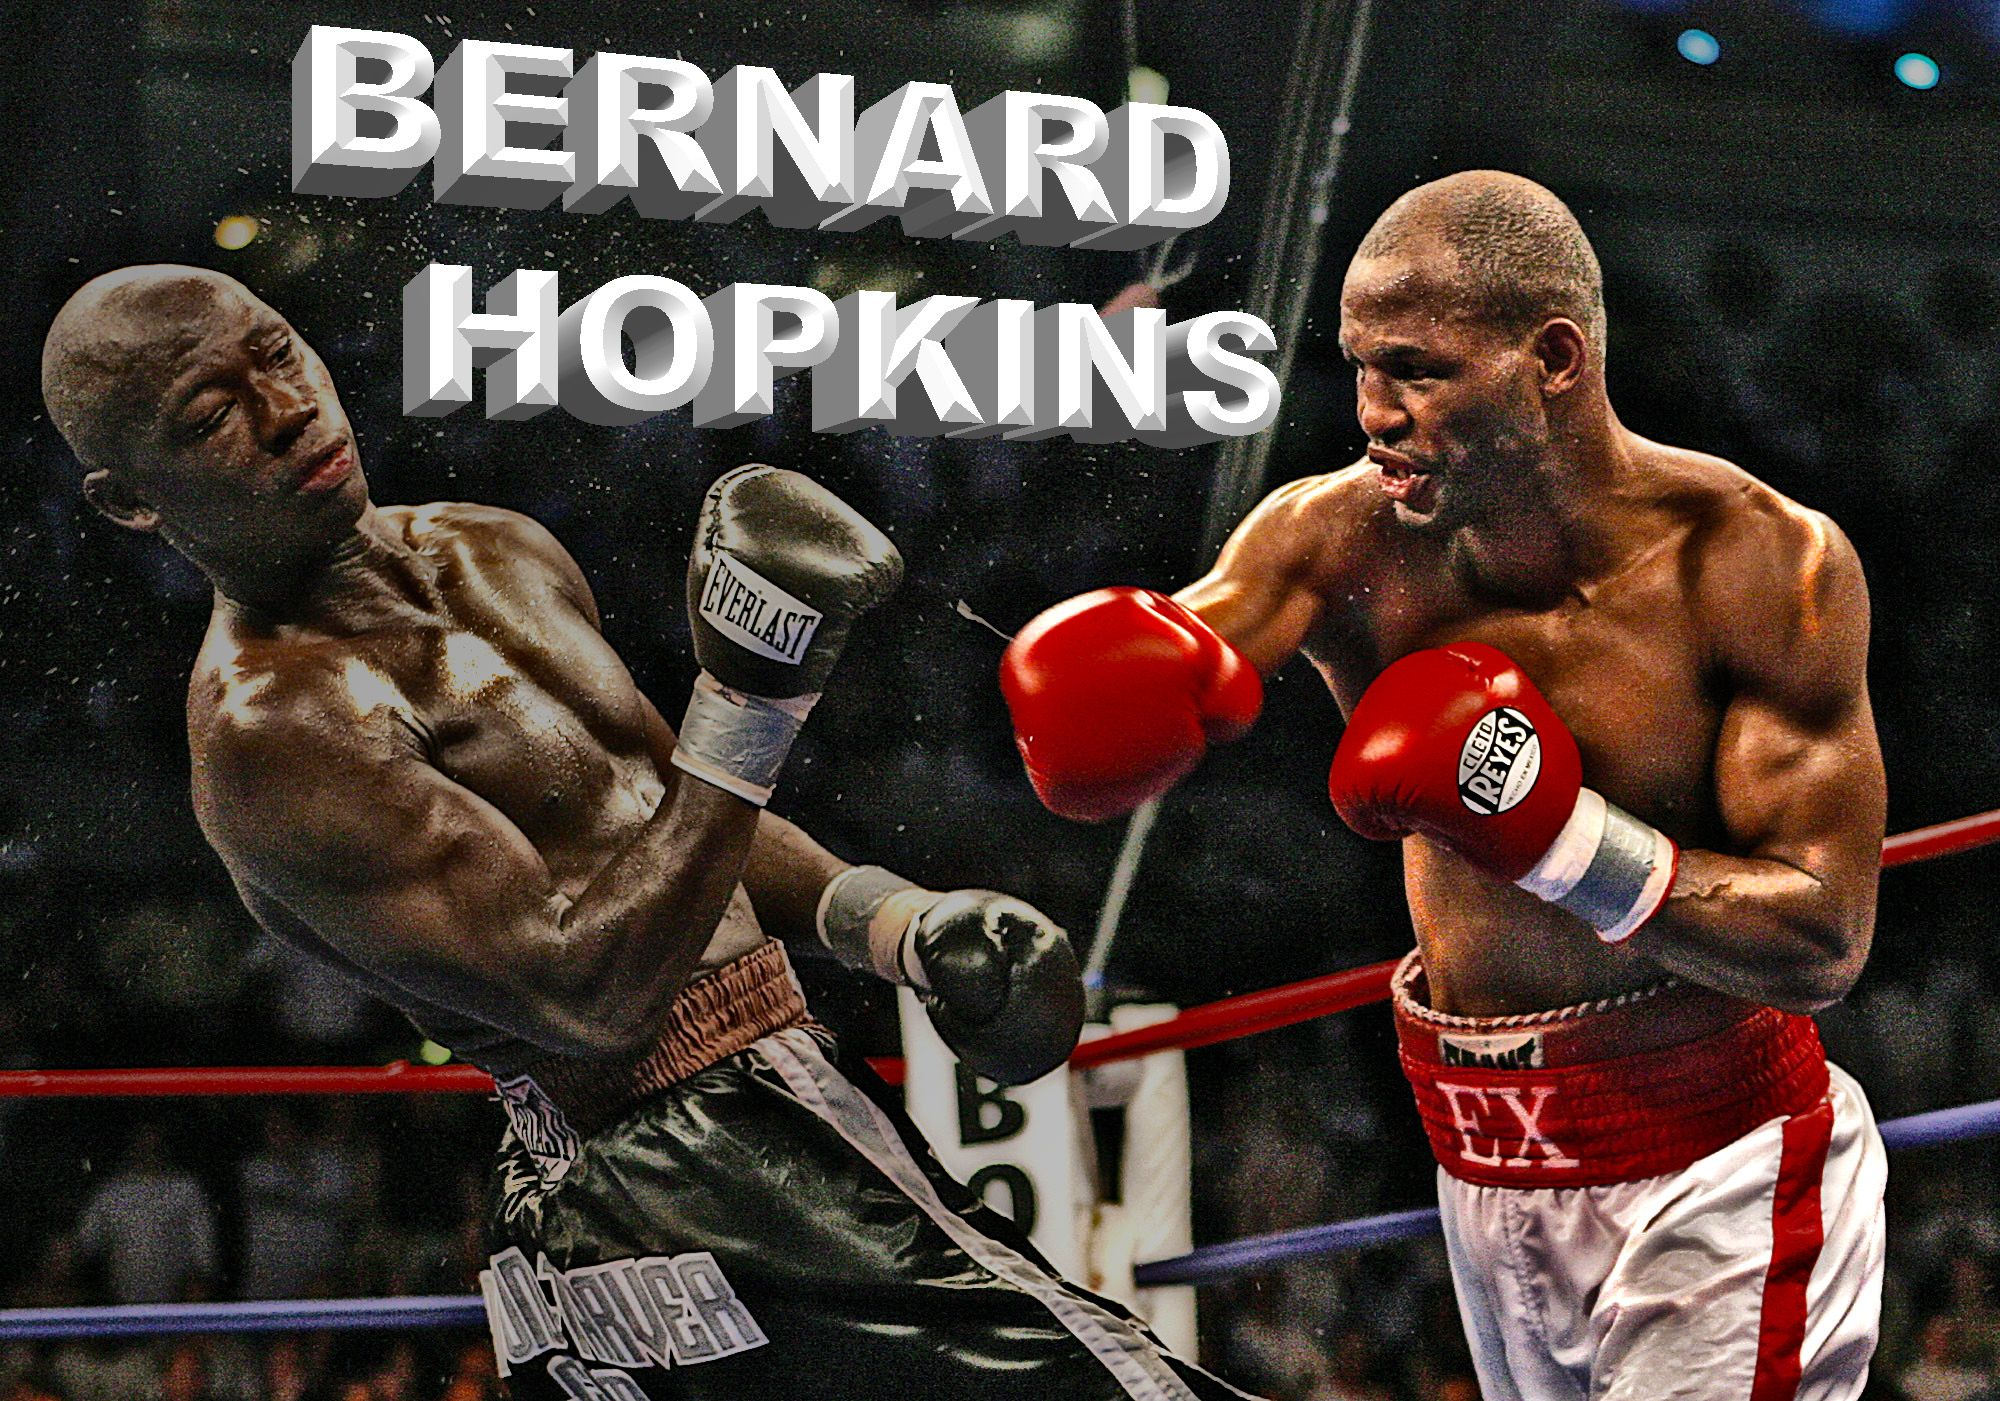 Bernard Hopkins, who is still a boxing world champion nearing the age of 50.